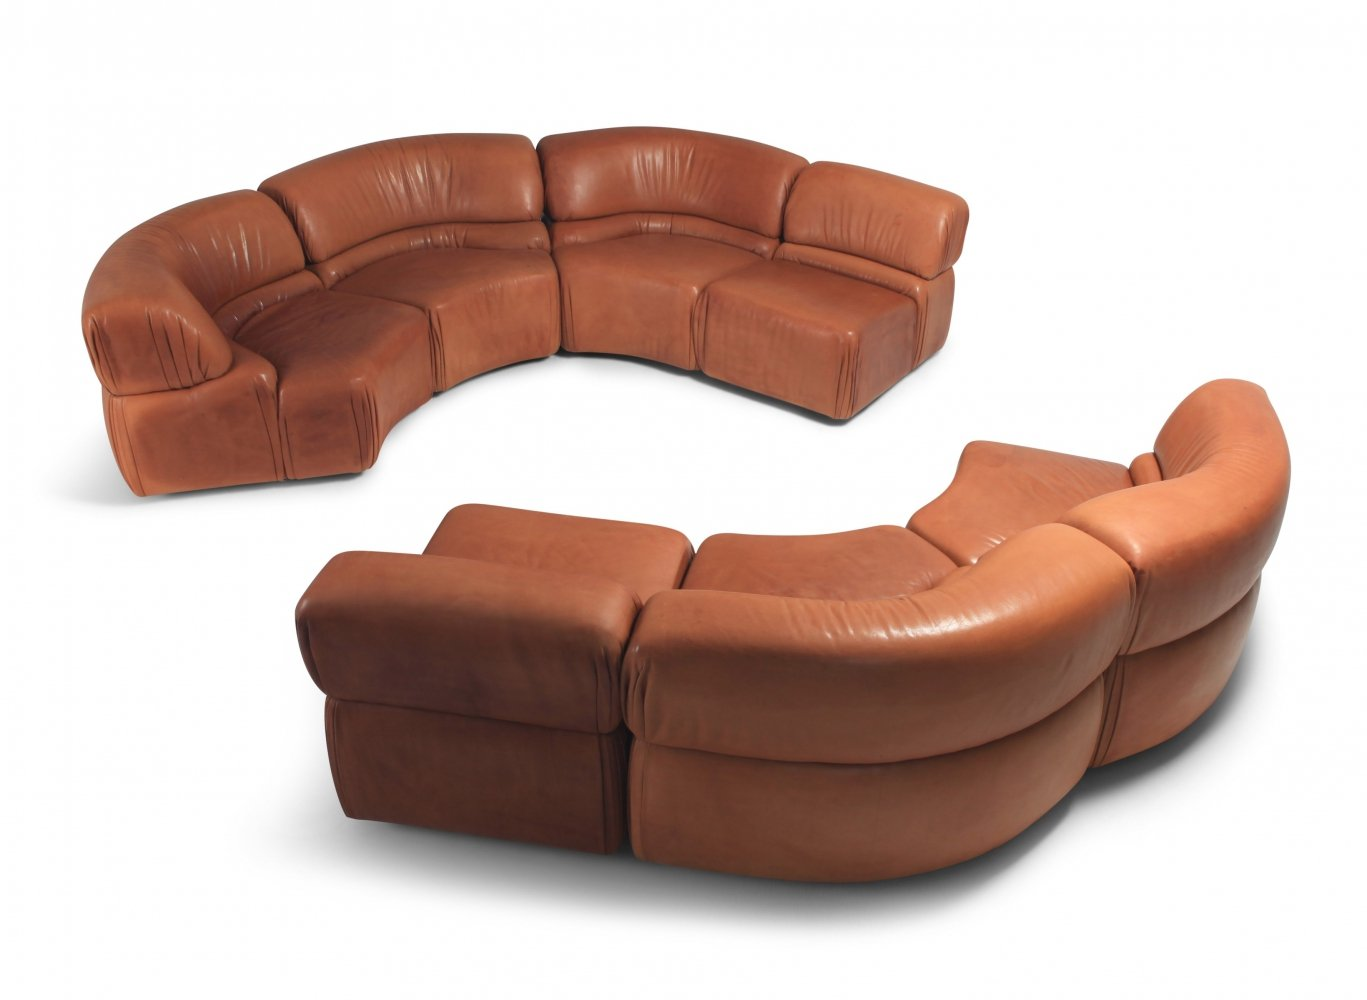 Sectional Cognac Leather Sofa